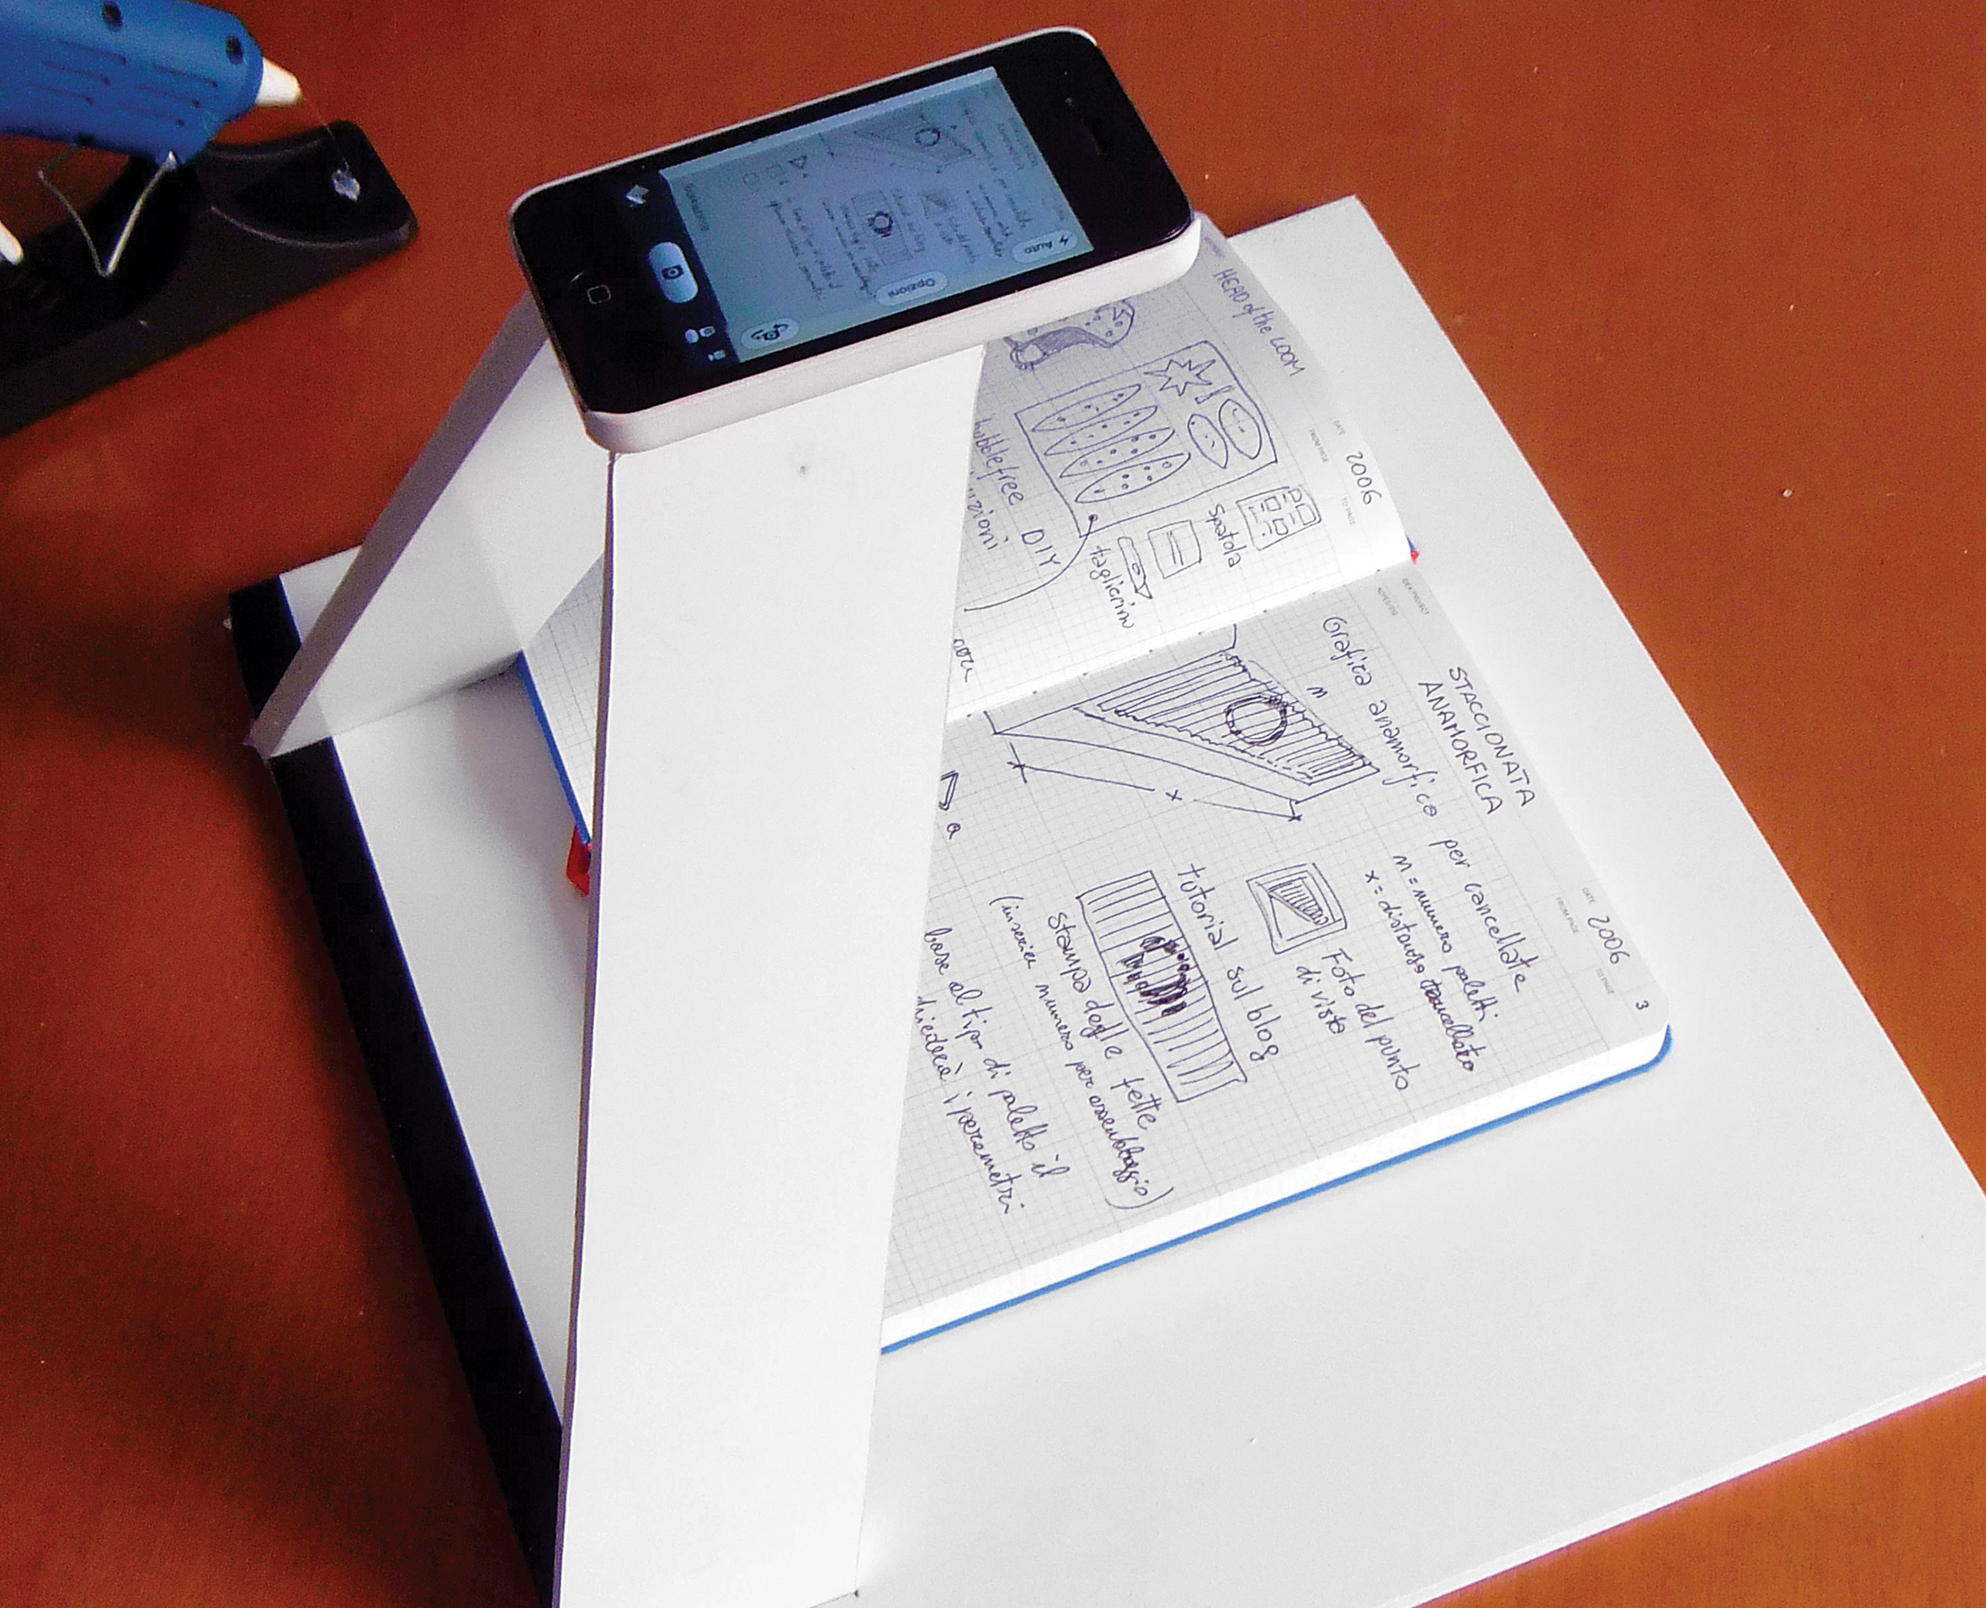 Build A Smartphone Scanner To Digitize Your Notes | Popular Science